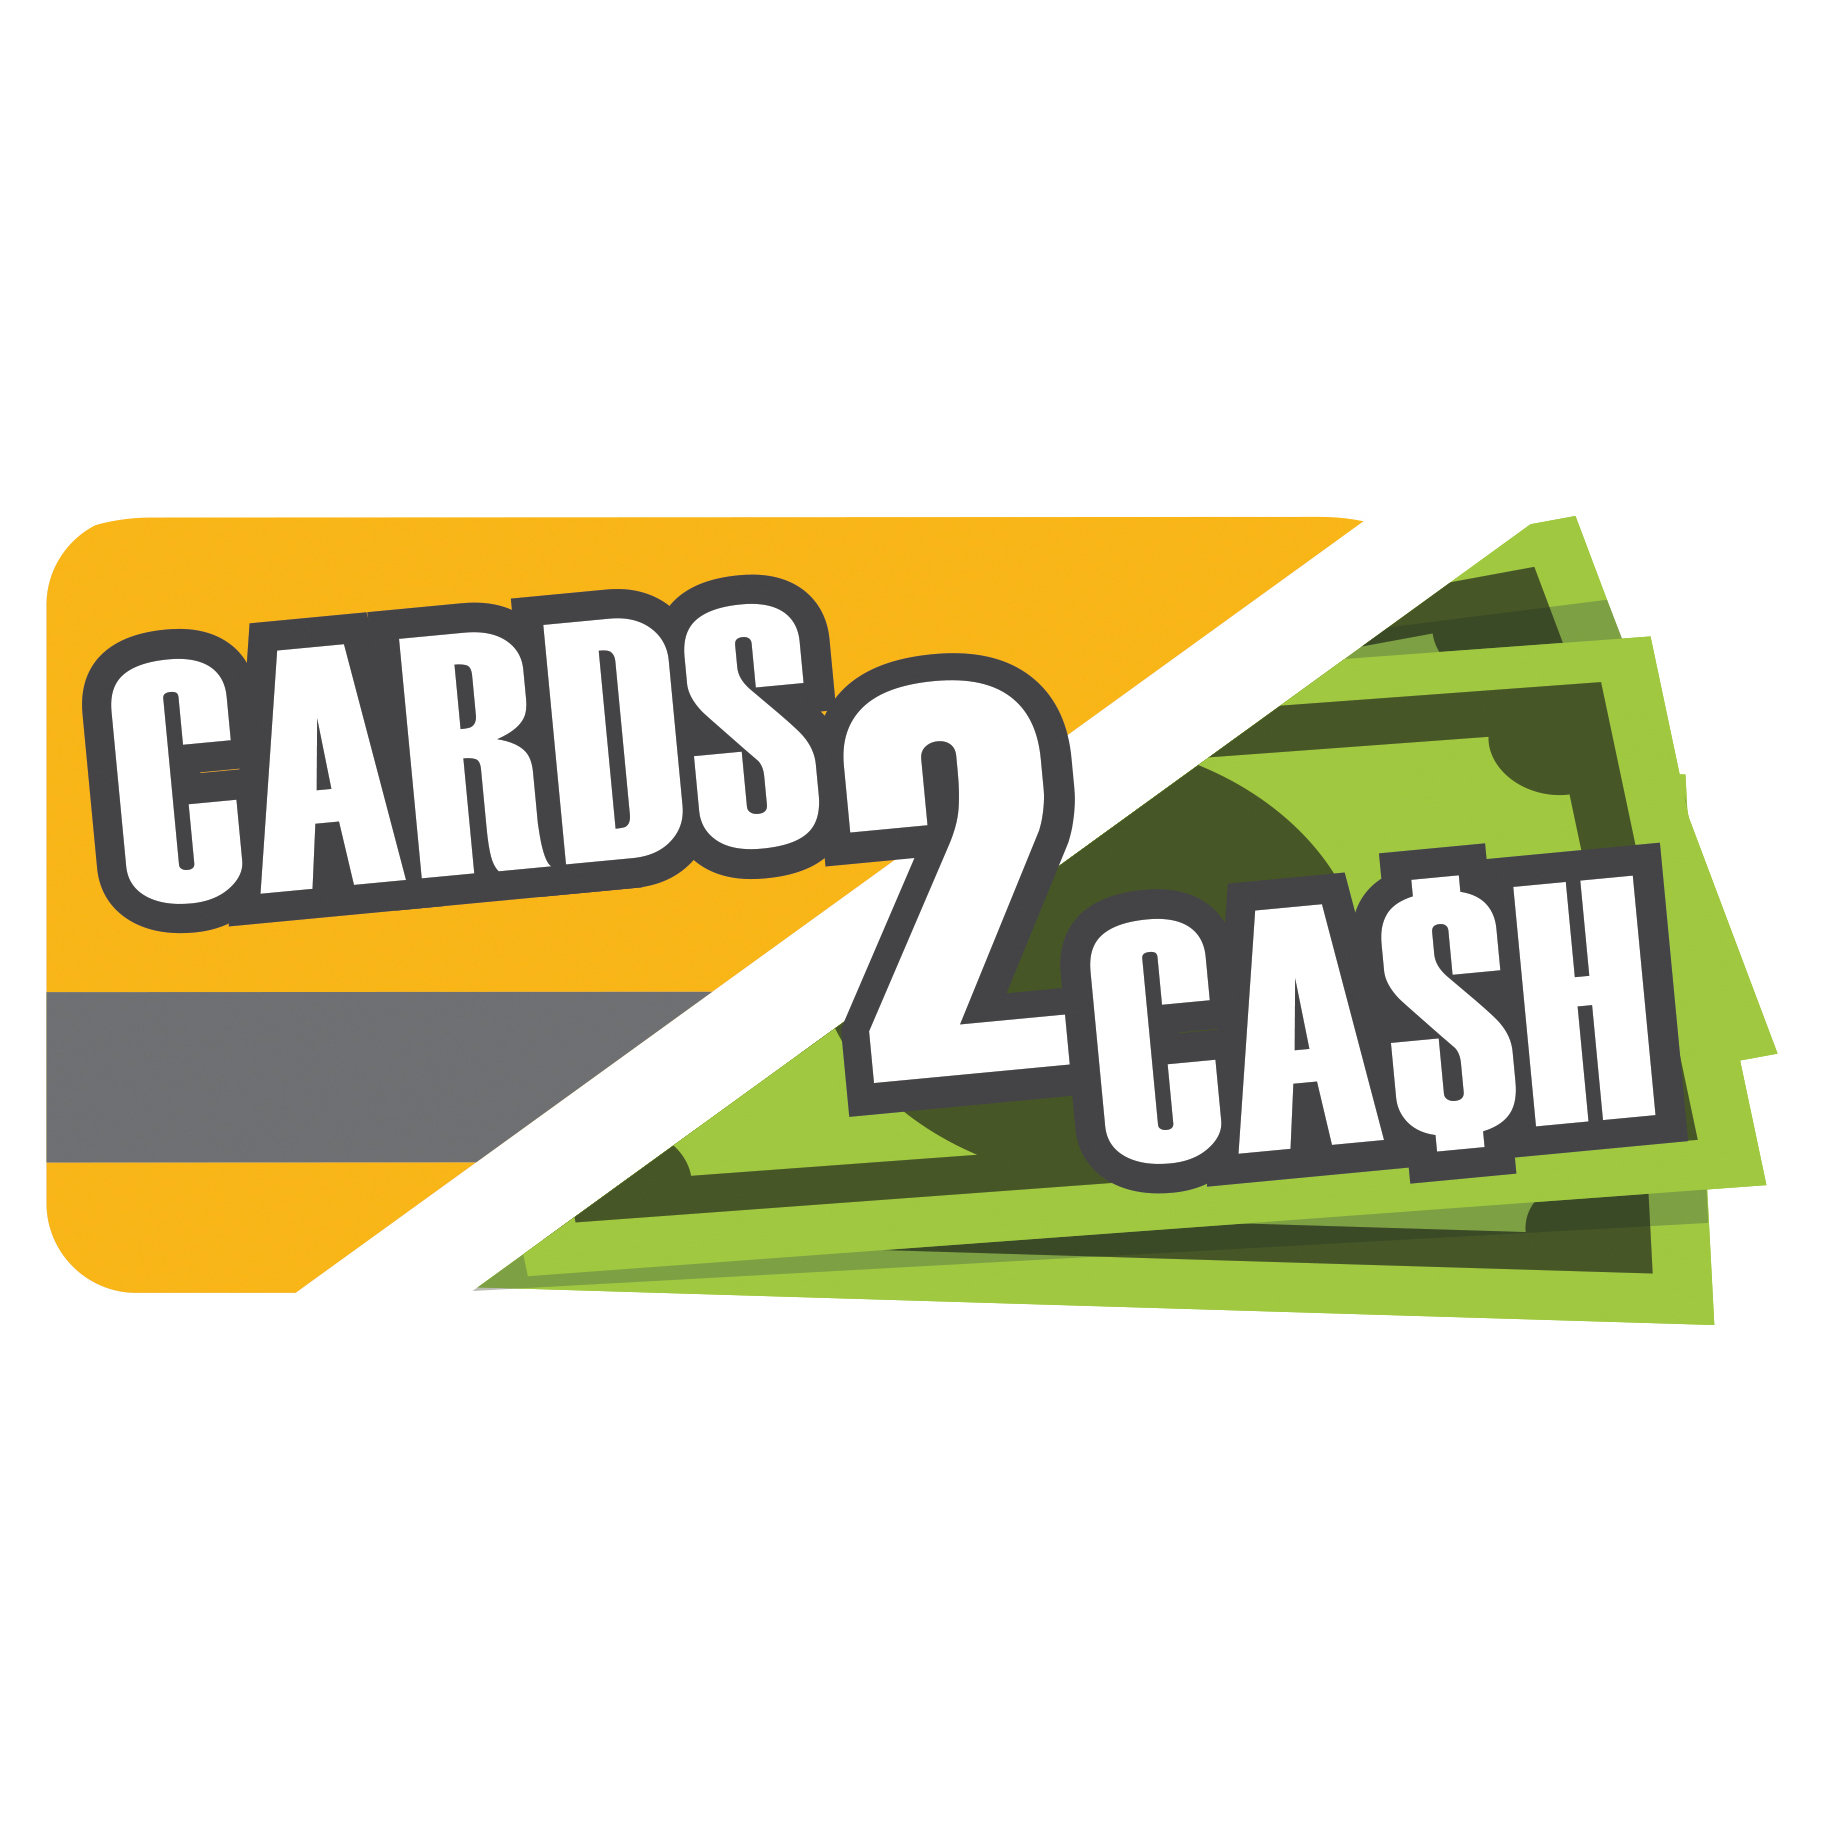 Cards 2 Cash image 2